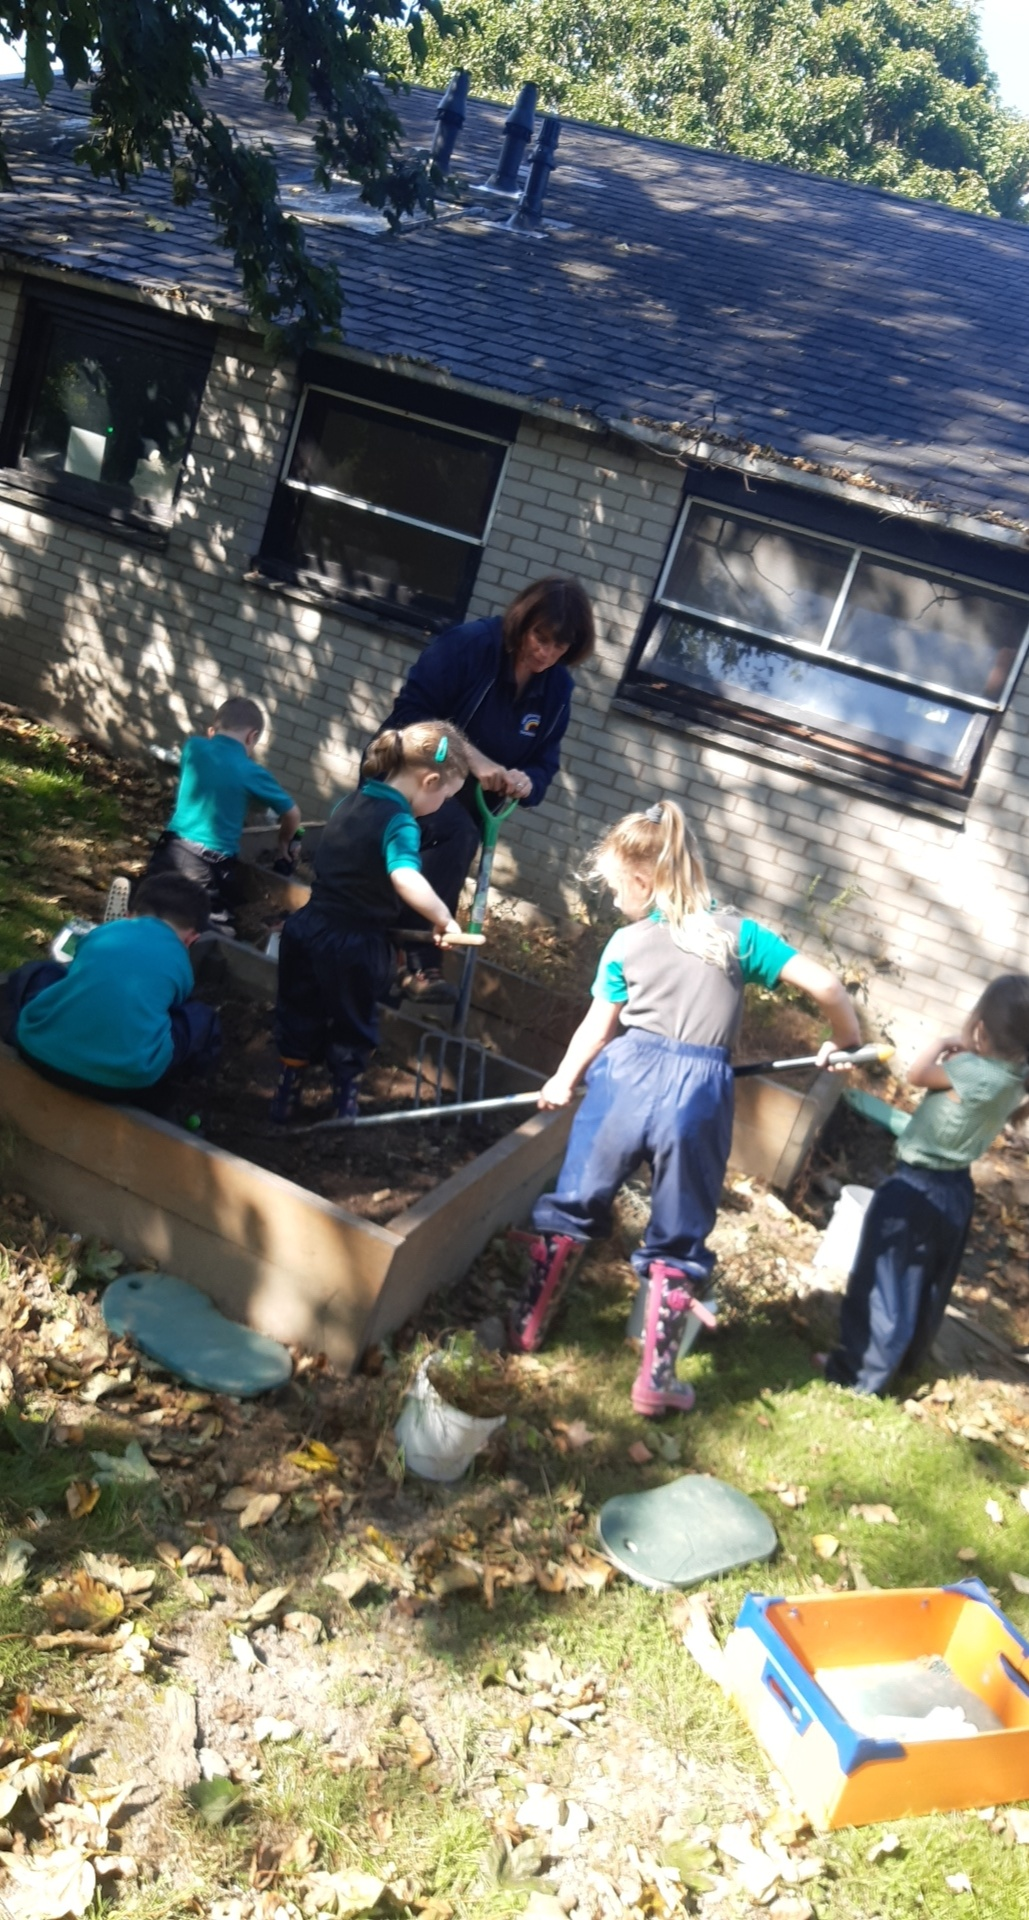 A group of kids working in the garden